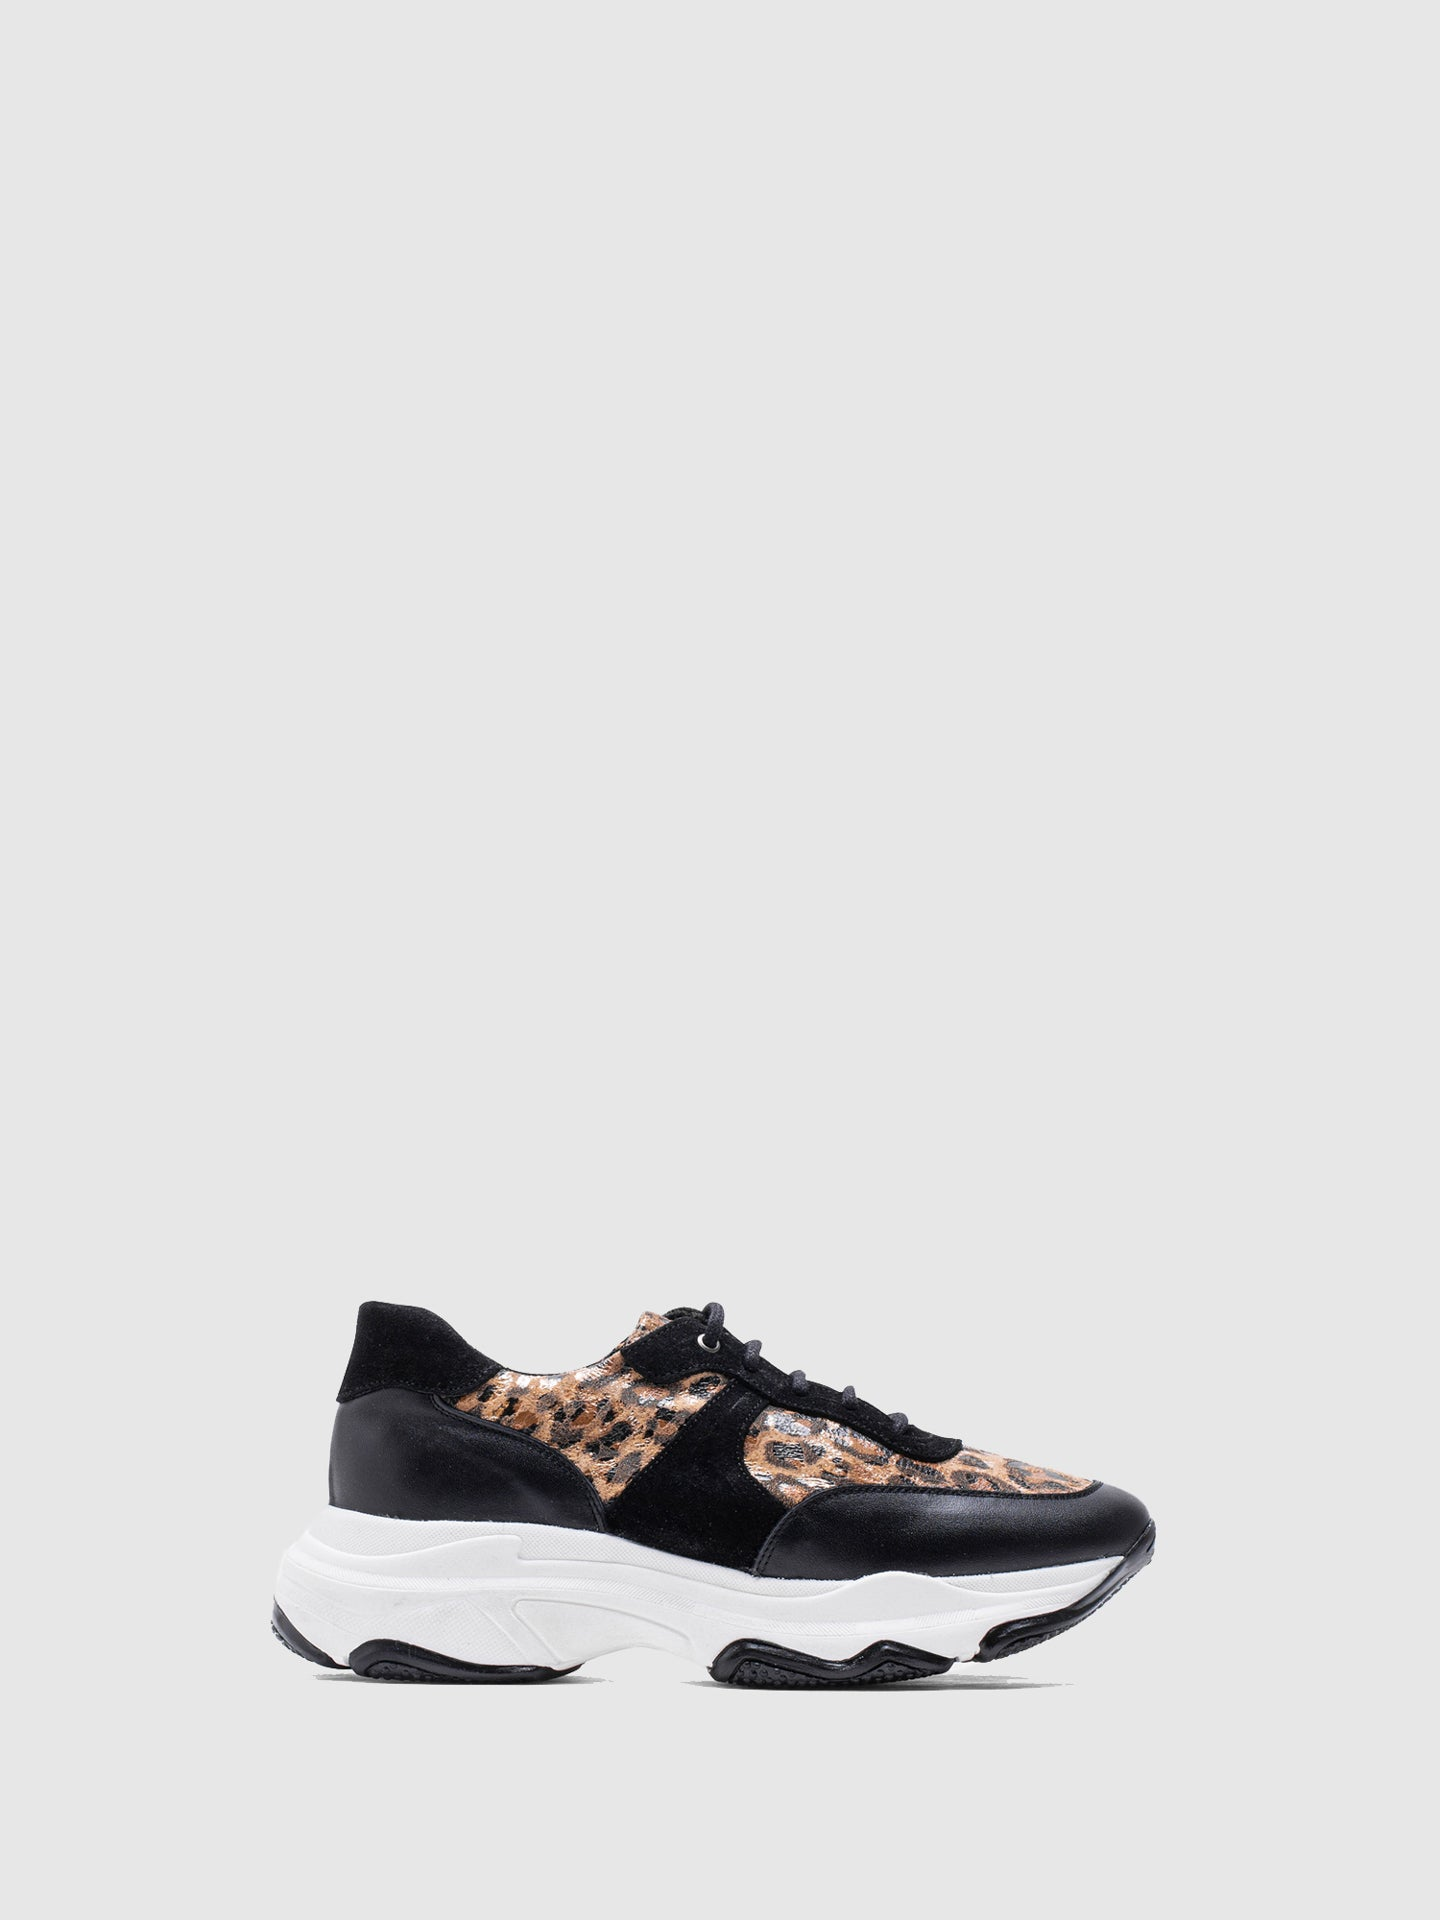 MARILA SHOES Black Lace-up Trainers